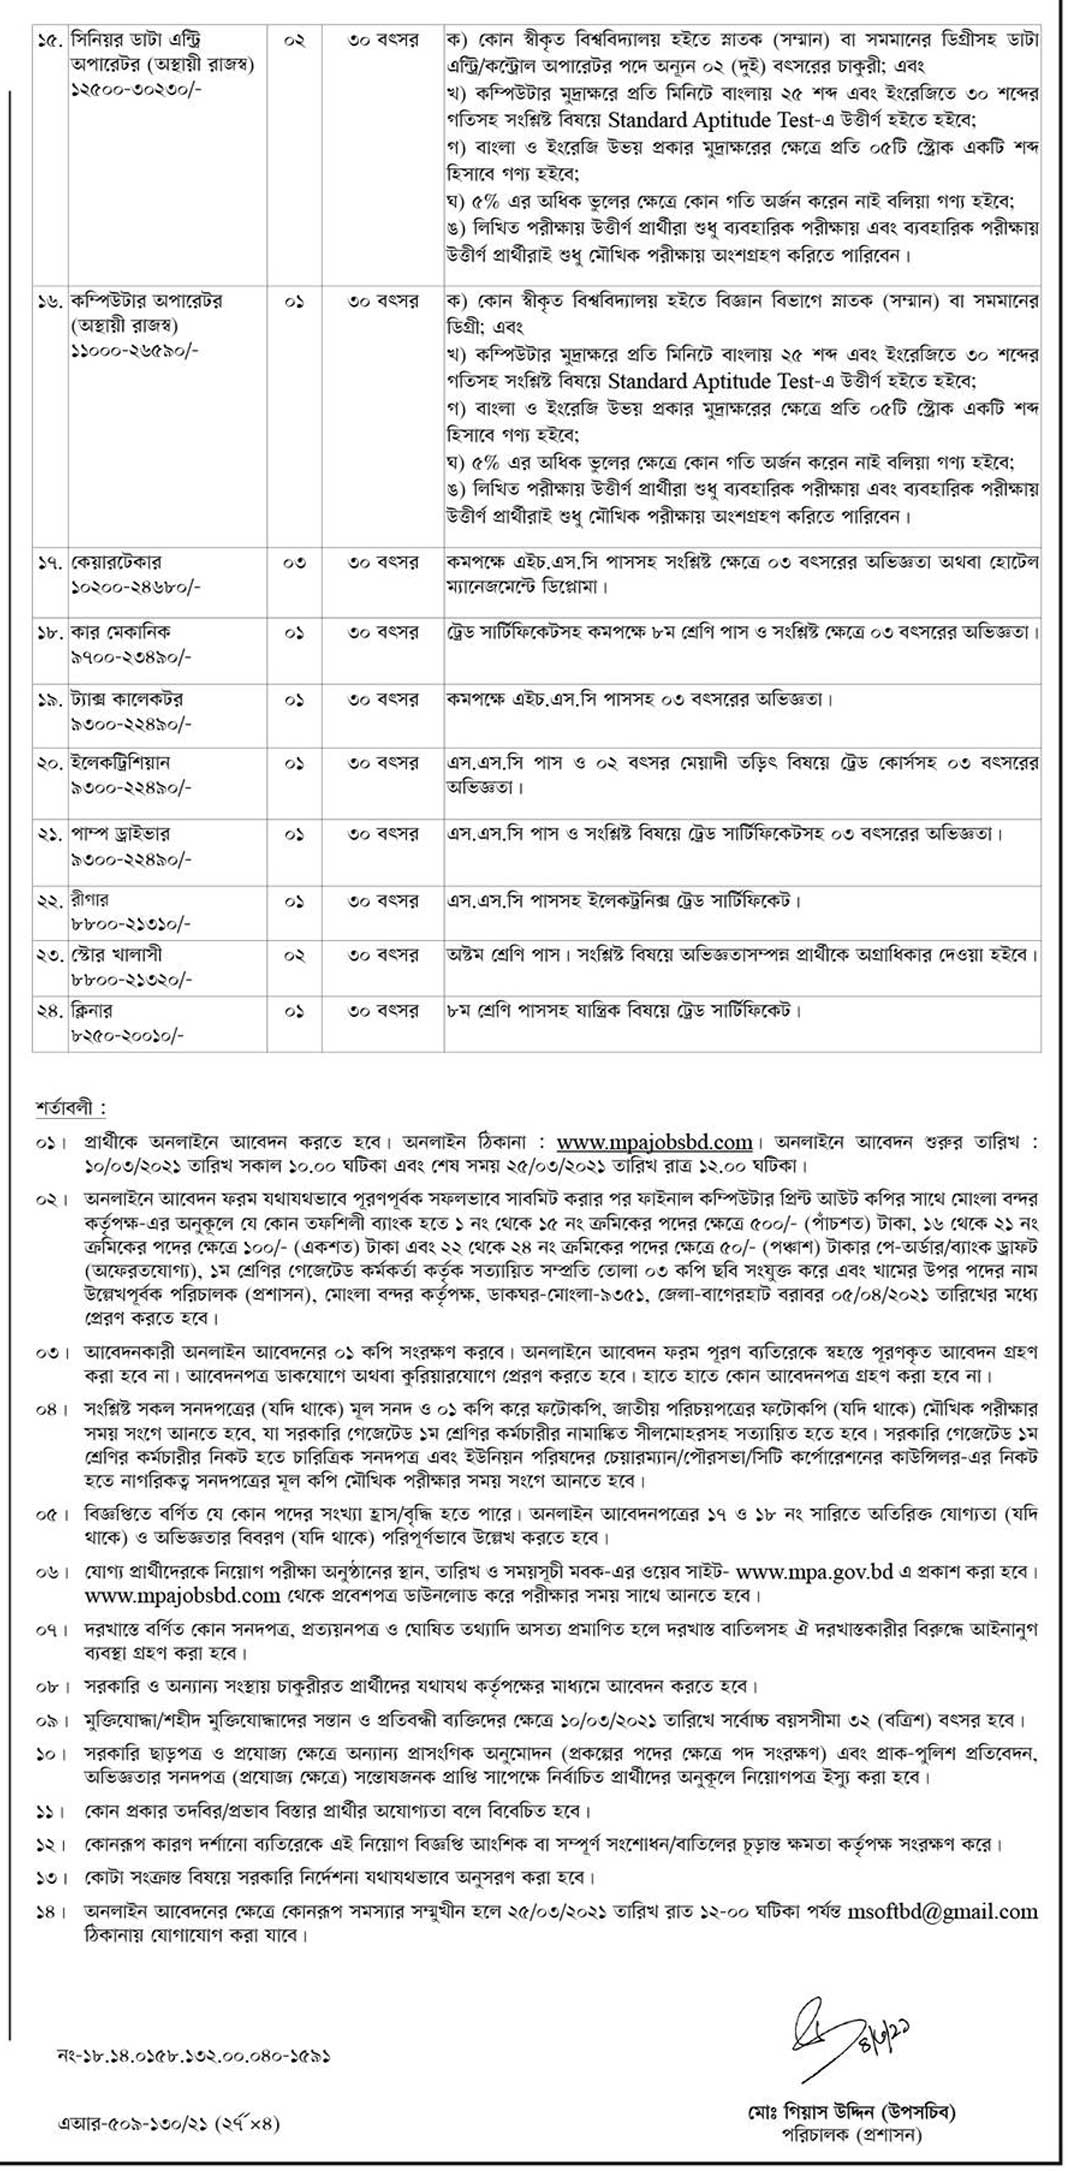 Mongla Port Authority Job Circular 2021